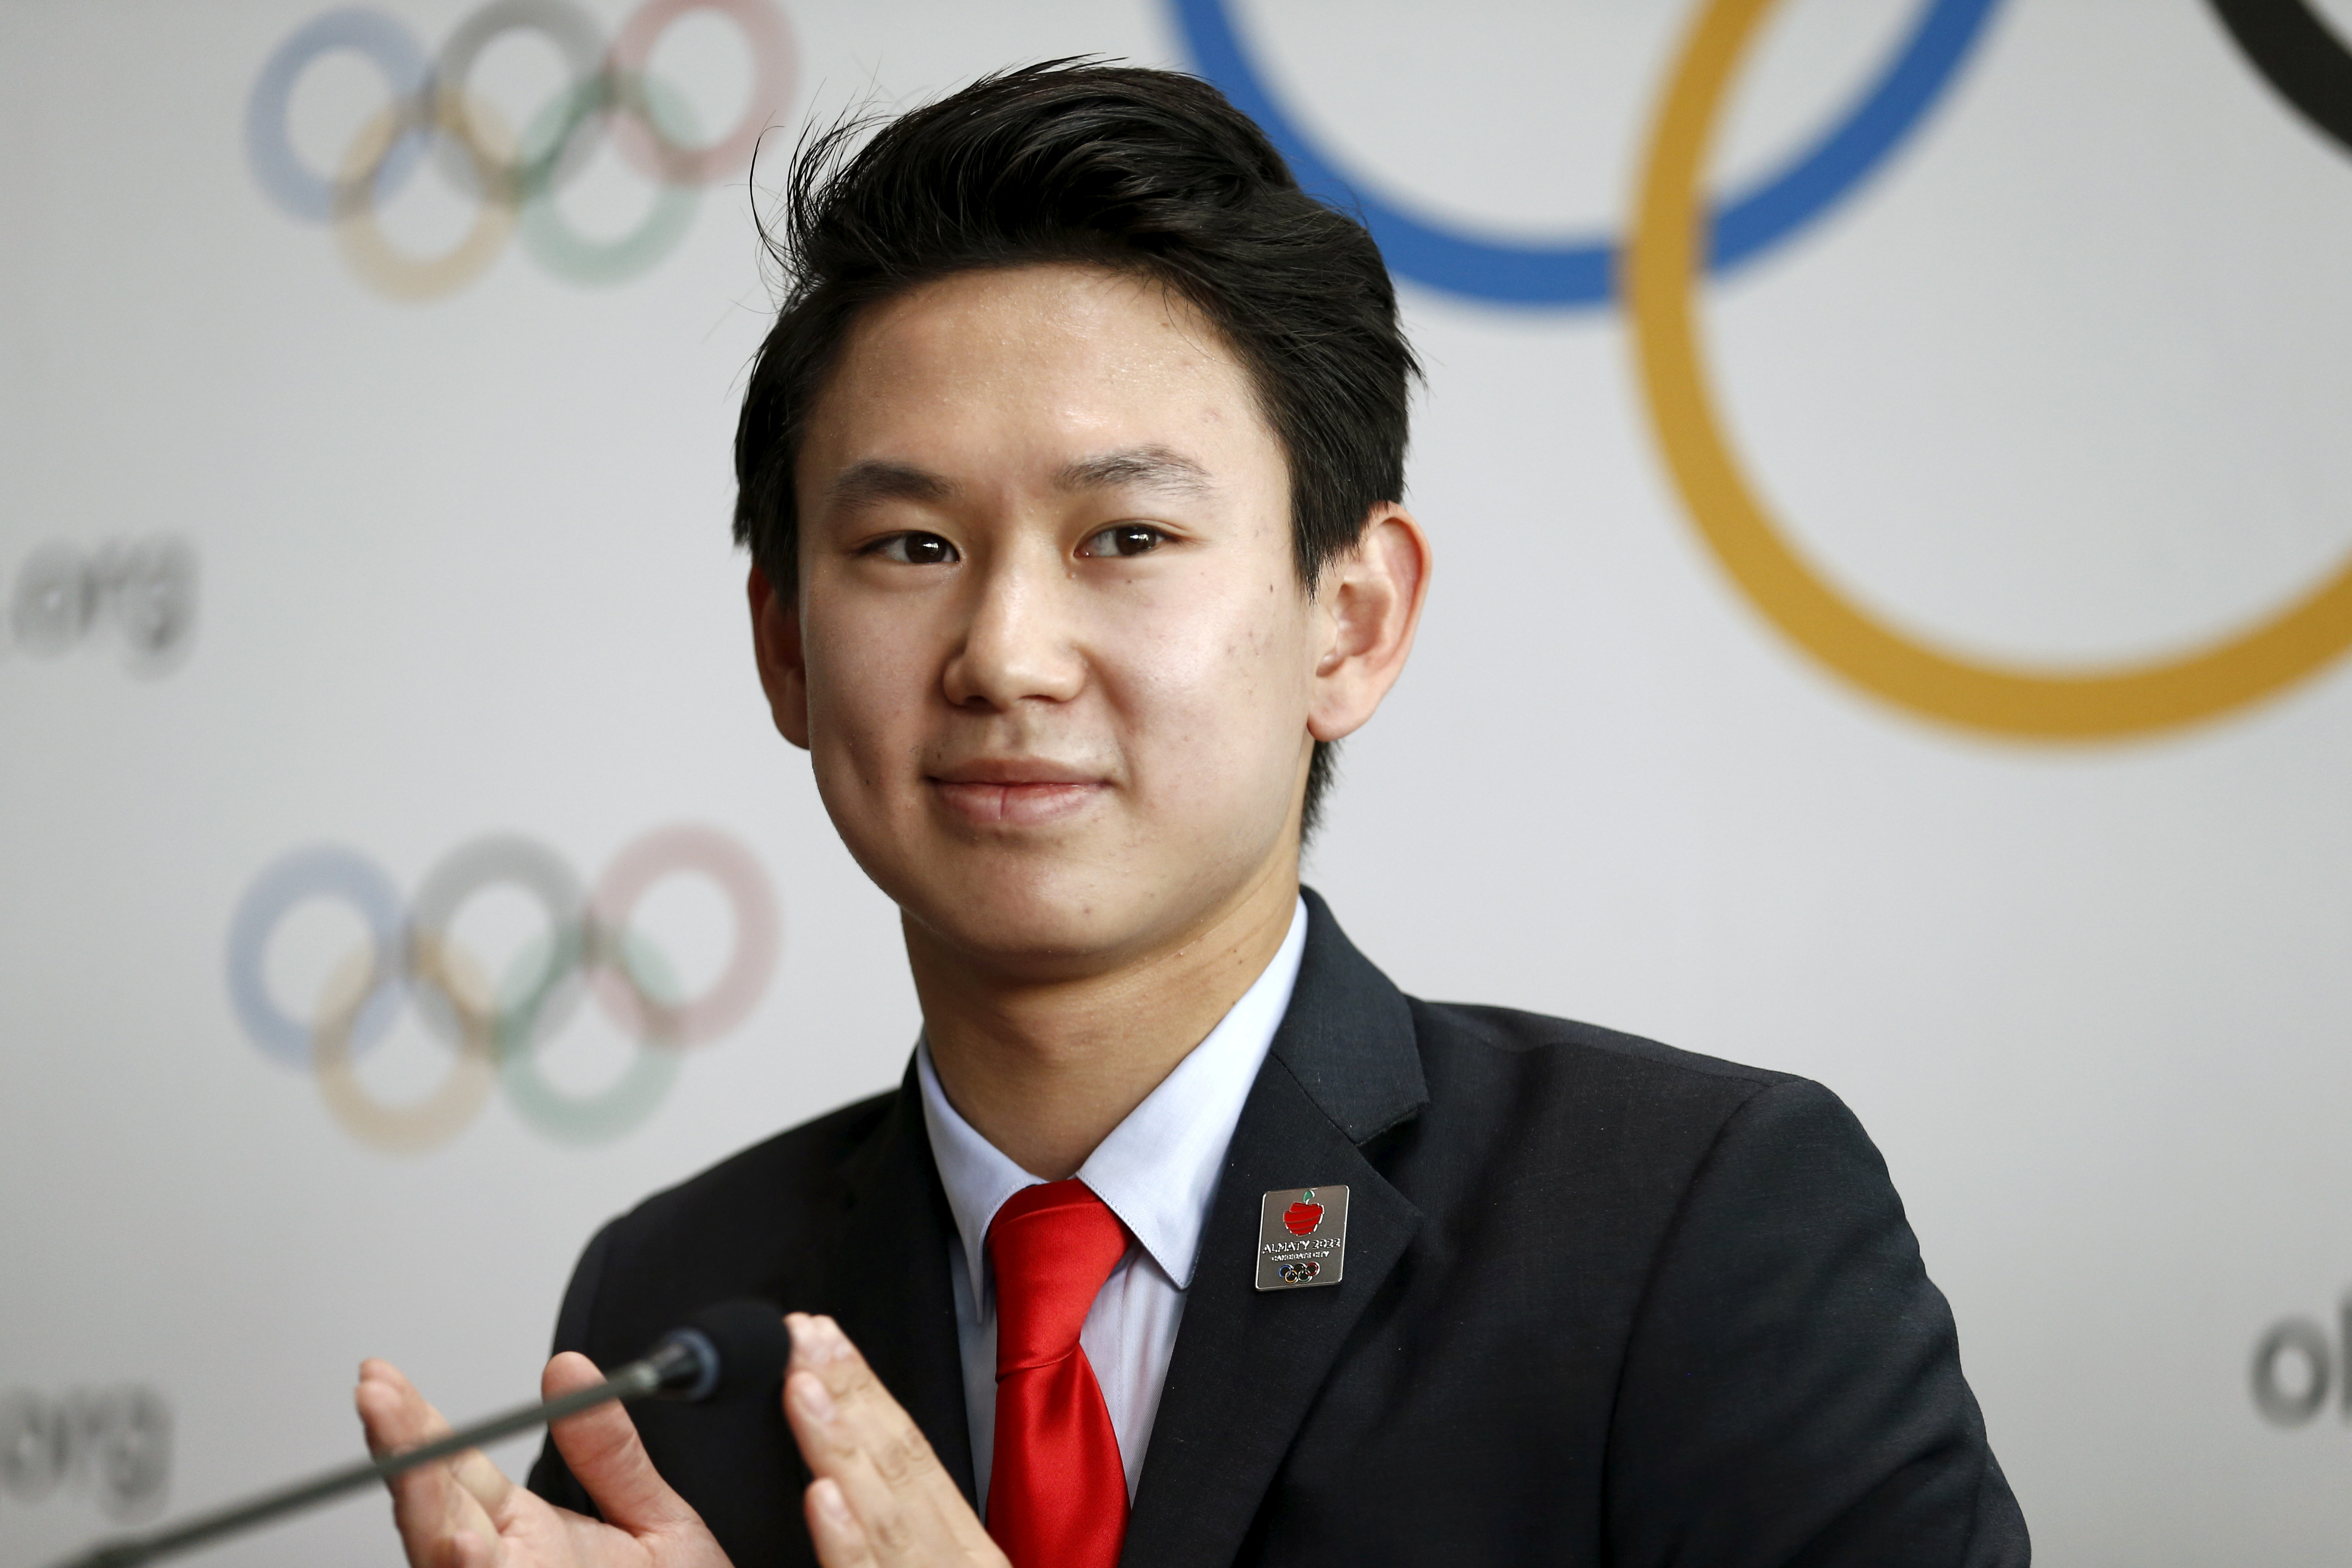 Denis Ten of Kazakhstan, bronze medalist in men's singles figure skating of the 2014 Winter Olympics in Sochi, attends a news conference after the briefing for International Olympic Committee (IOC) members by the 2022 Winter Olympic Games candidate city of Almaty at the Olympic Museum in Lausanne, Switzerland, June 9, 2015.